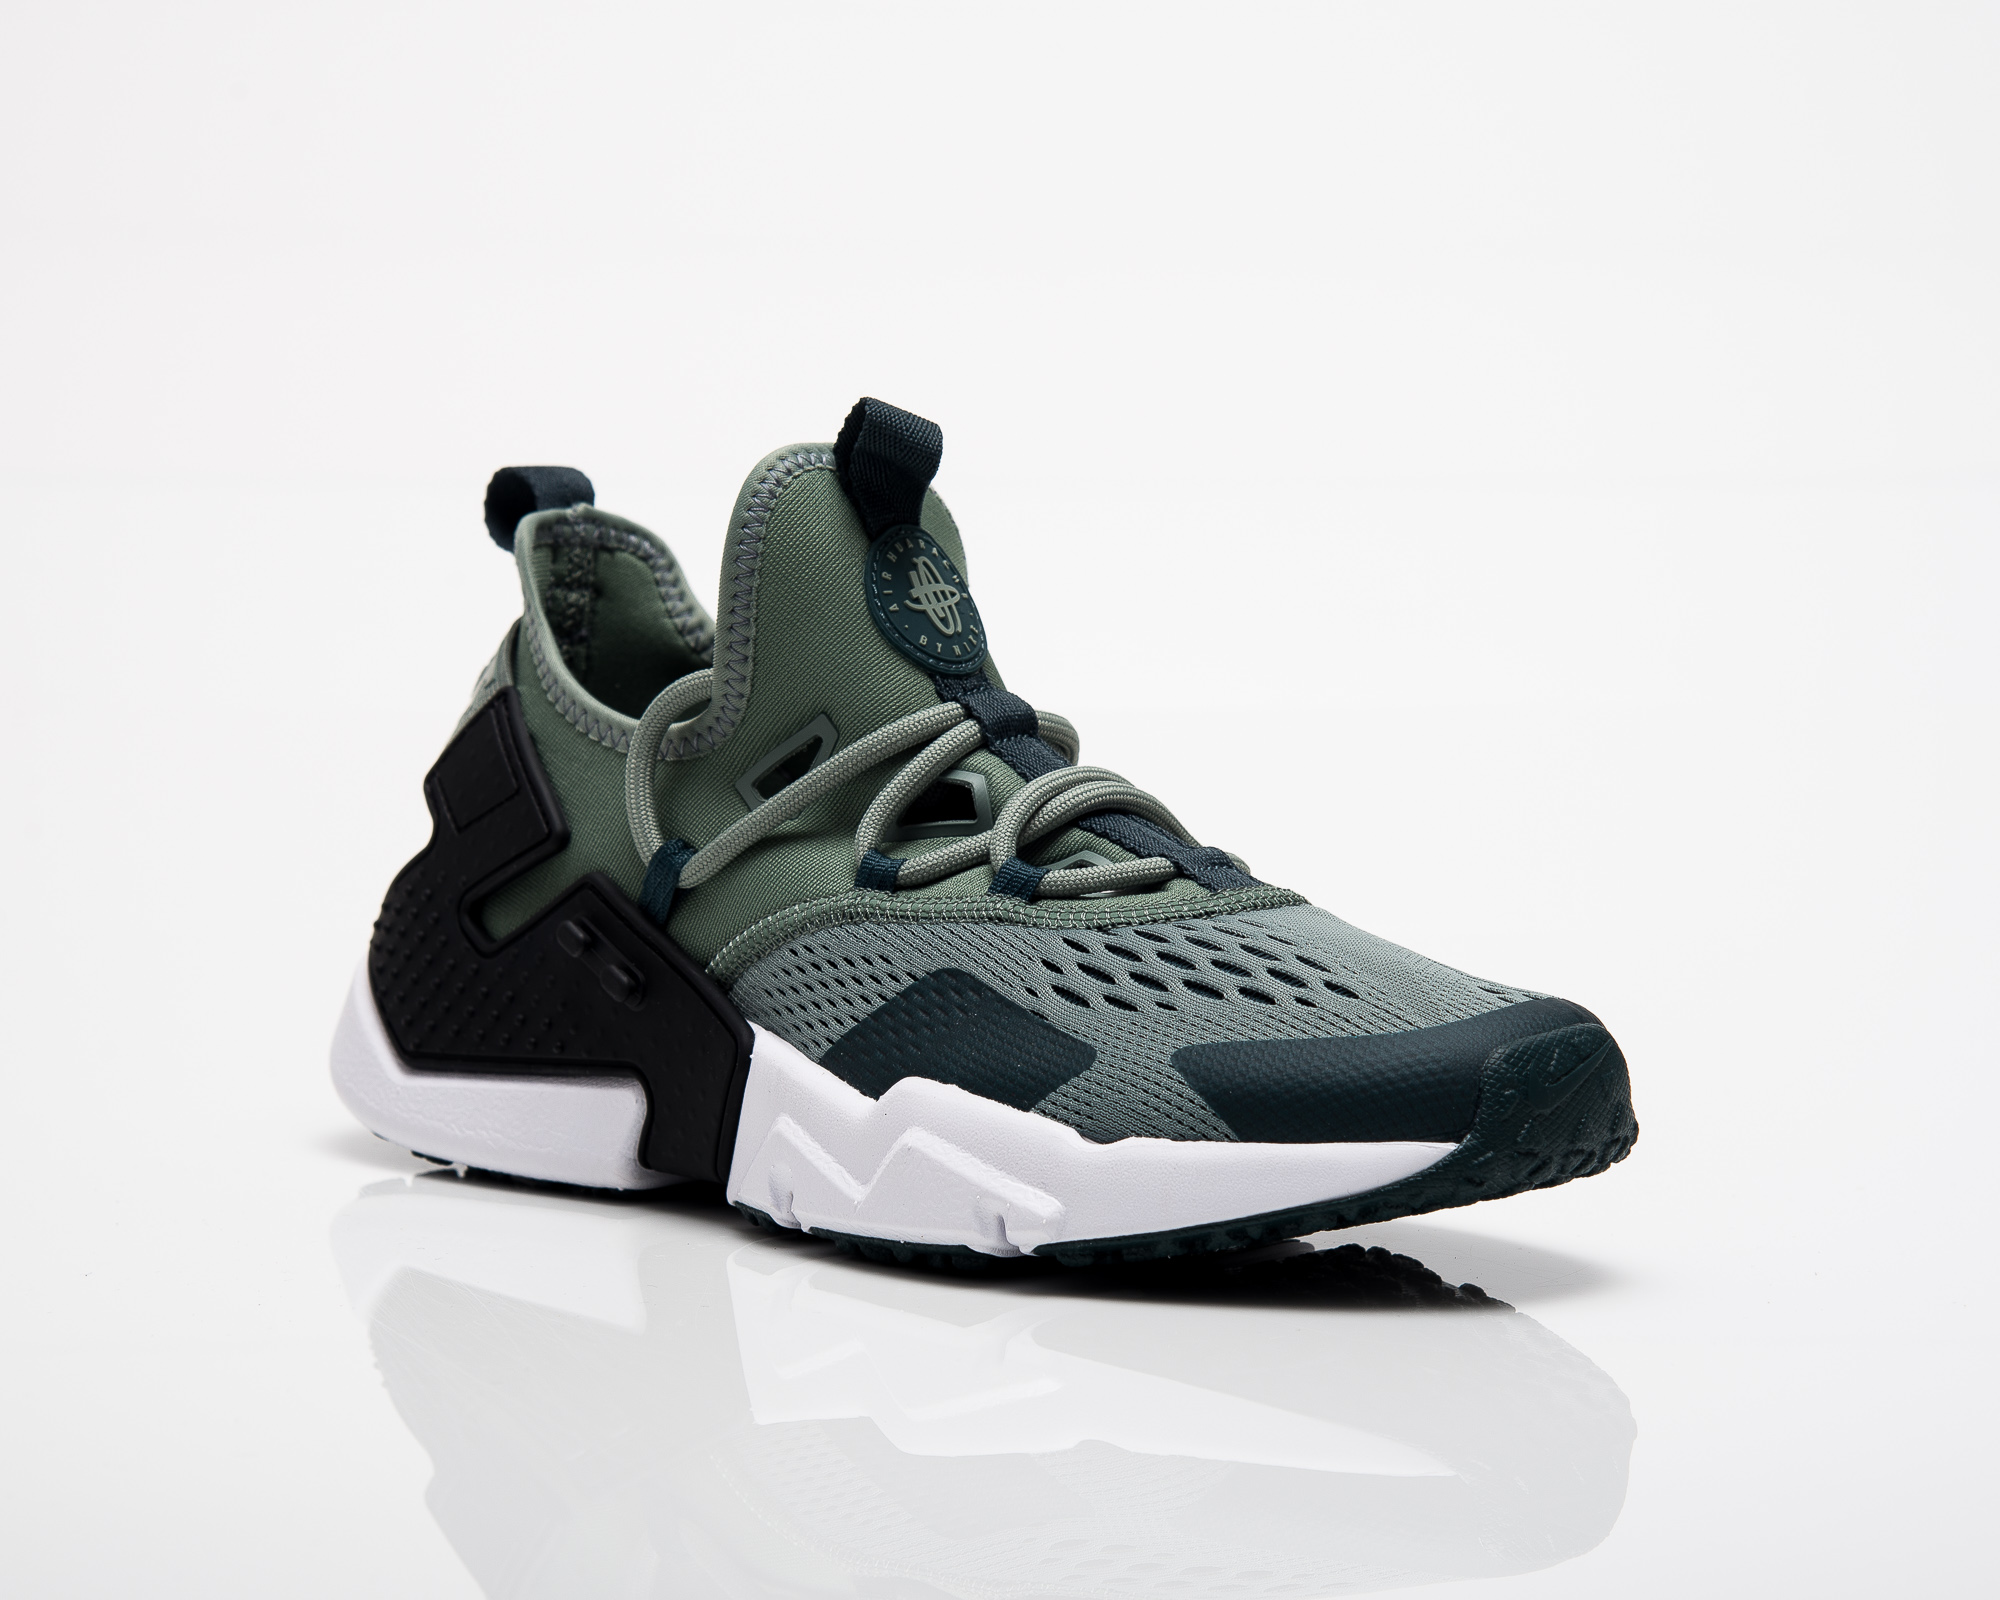 1cccdbcc3dd8 Nike Air Huarache Drift Breathe - Shoes Casual - Sporting goods